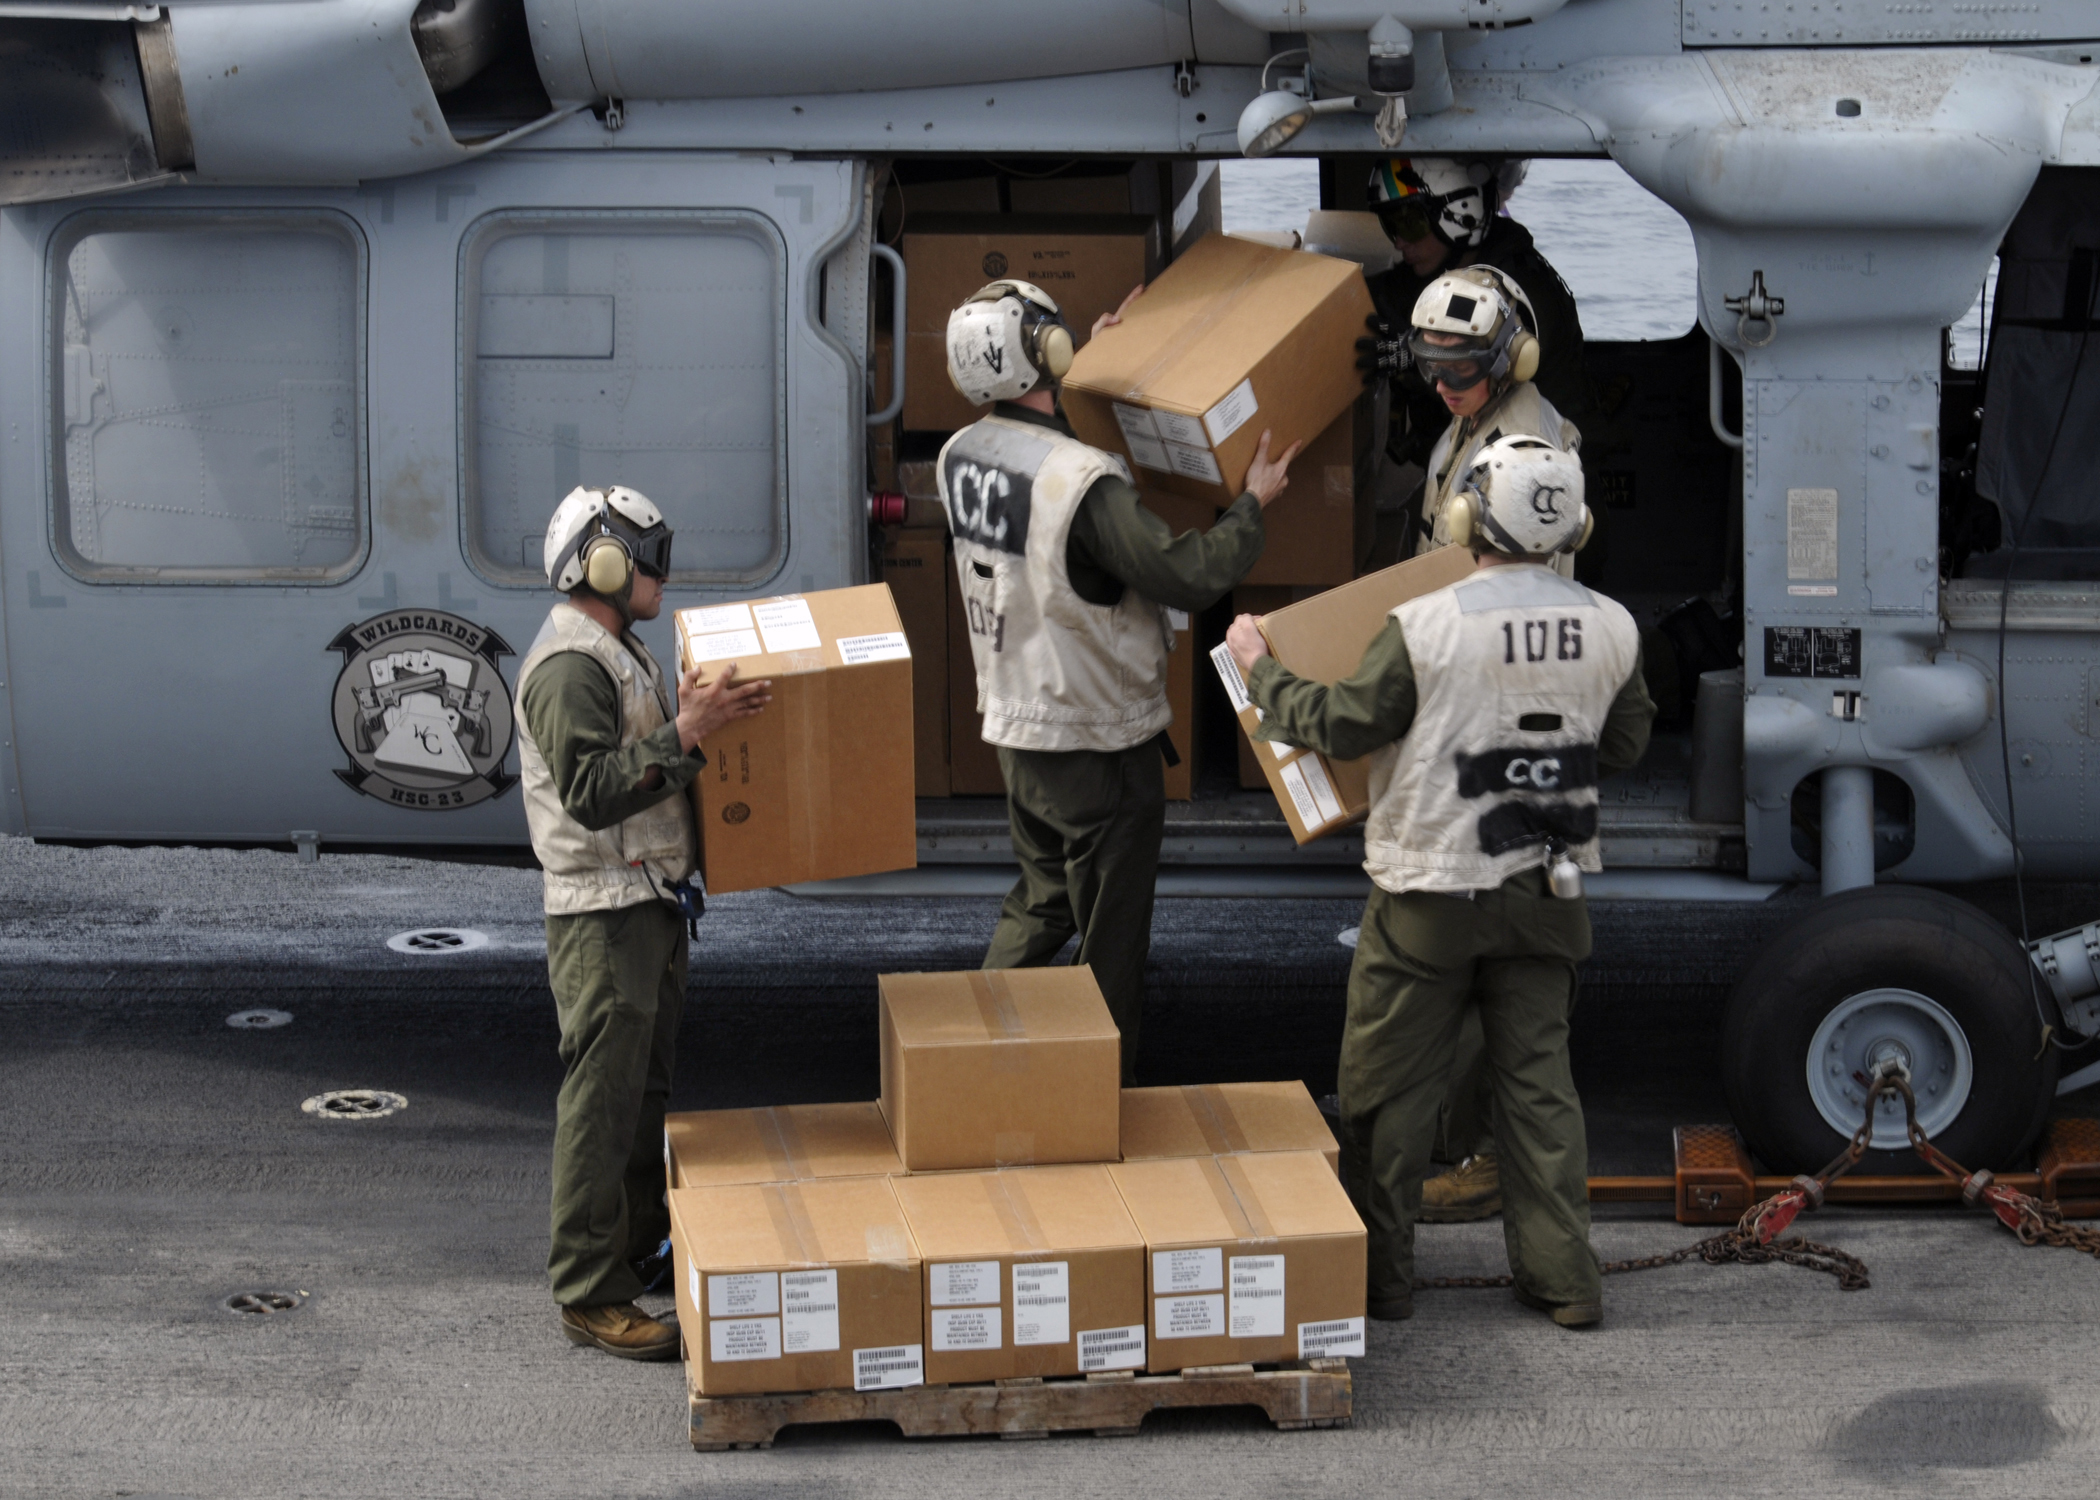 helicopter operations at sea with File Us Navy 100906 N 1485c 379 Marines Load Humanitarian Assistance Disaster Relief Supplies Onto An Mh 60s Sea Hawk Helicopter Aboard Uss Peleliu  Lha 5 on 1243 in addition Navy To Get Largestever Ship besides File US Navy 050726 N 0318R 021 Port Services and Helicopter Mine Countermeasures Squadron Fifteen  HM 15  personnel  load a MK 105 Mag ic Influence Minesweeping System  onto the  hibious assault ship USS Bataan  LHD 5 in addition Helicopter Sea  bat Squadron 26 also Scp169s eye found on rthalassophobia.